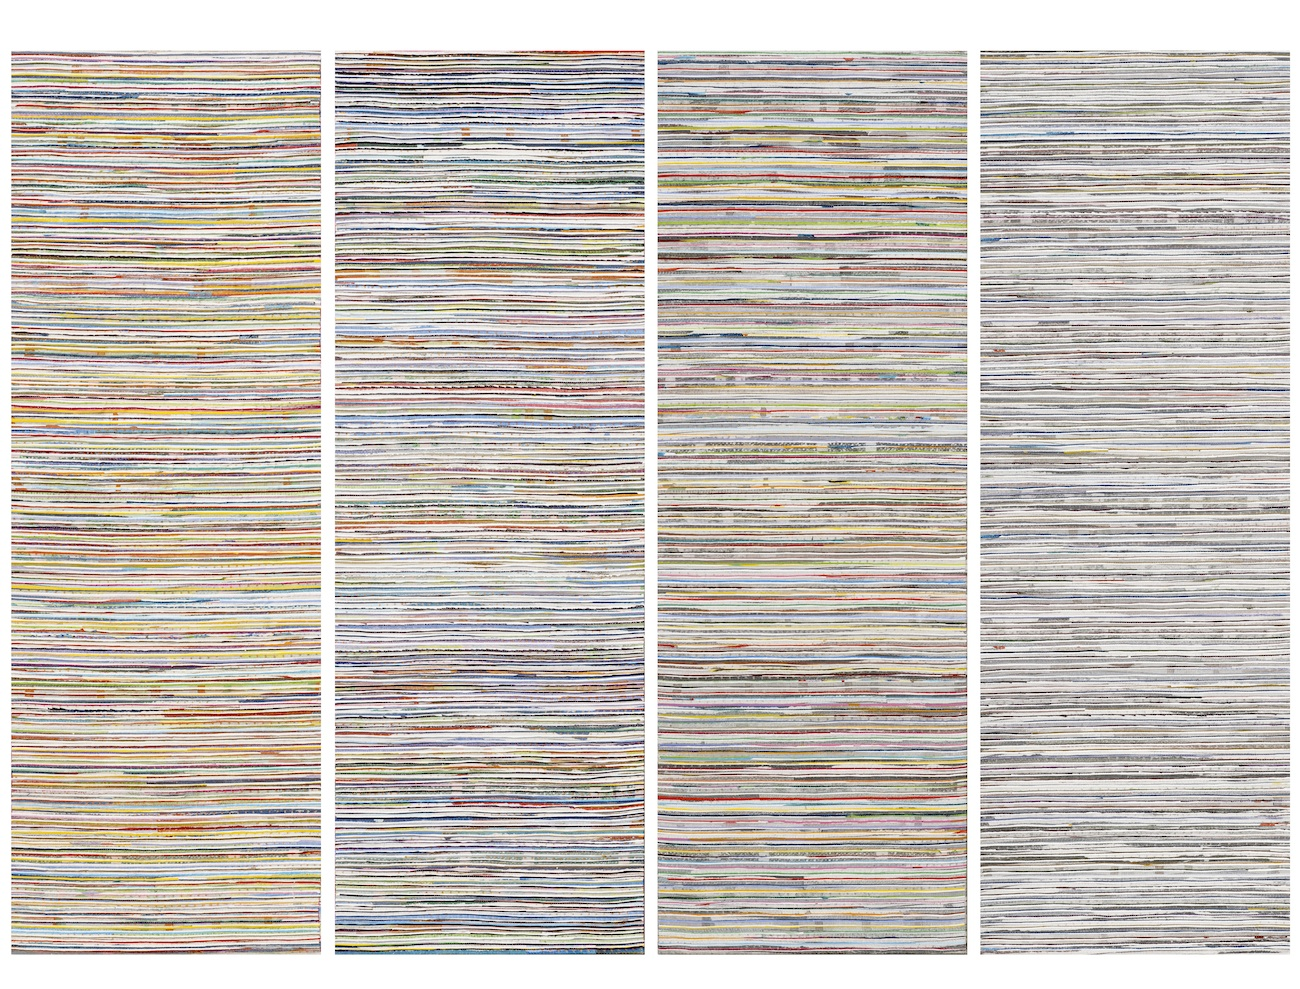 Middle Ground - In the Line 2014, acrylic and nylon thread on linen, 50 x 200cm (4 panels). Collection of the Artist